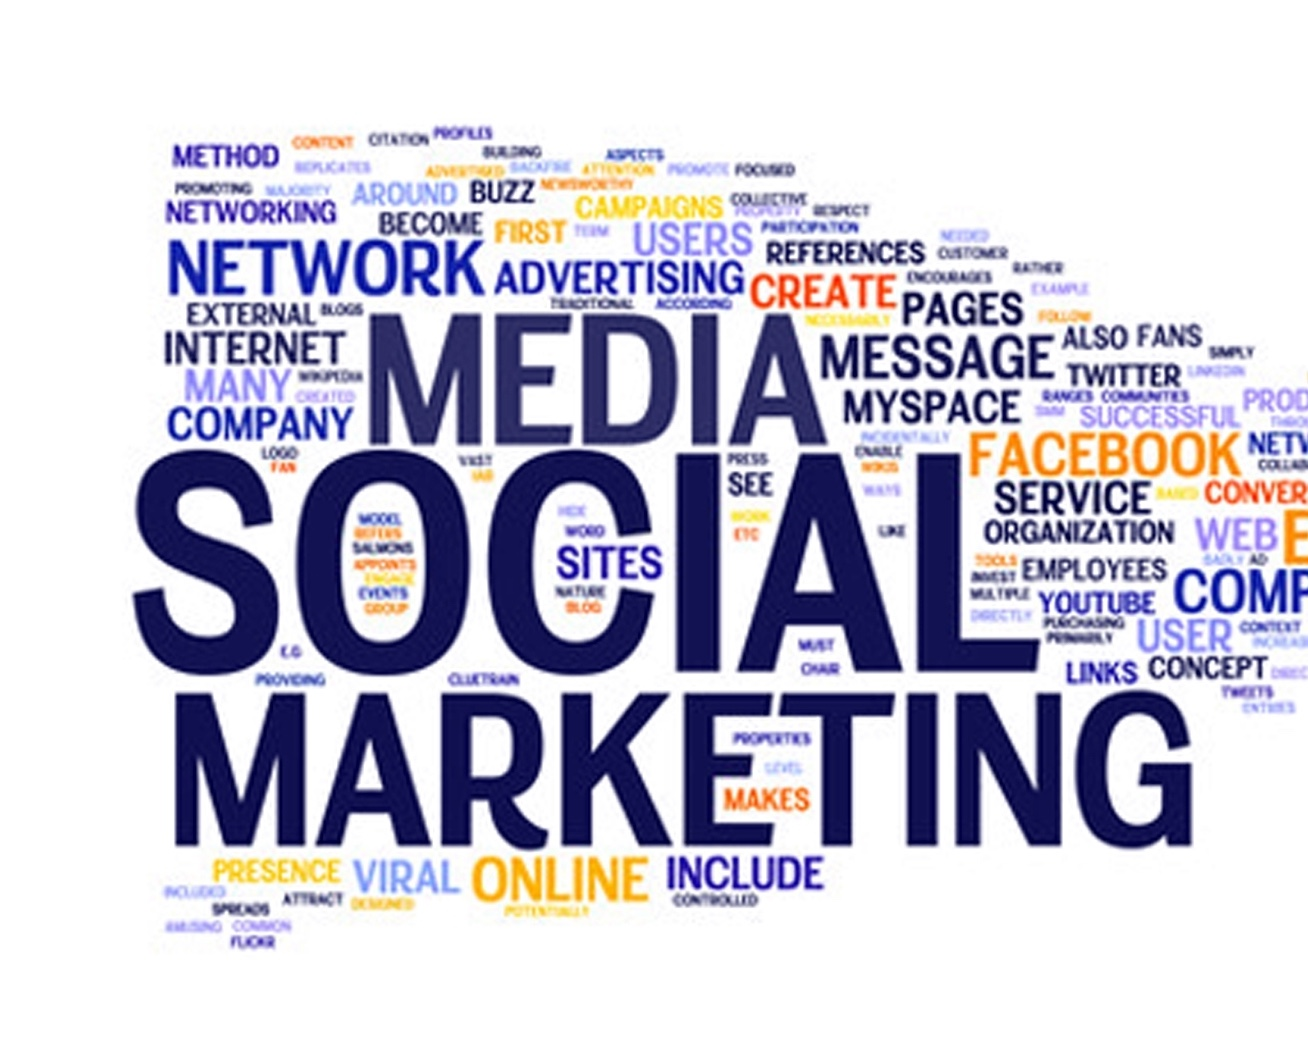 social networking works cited